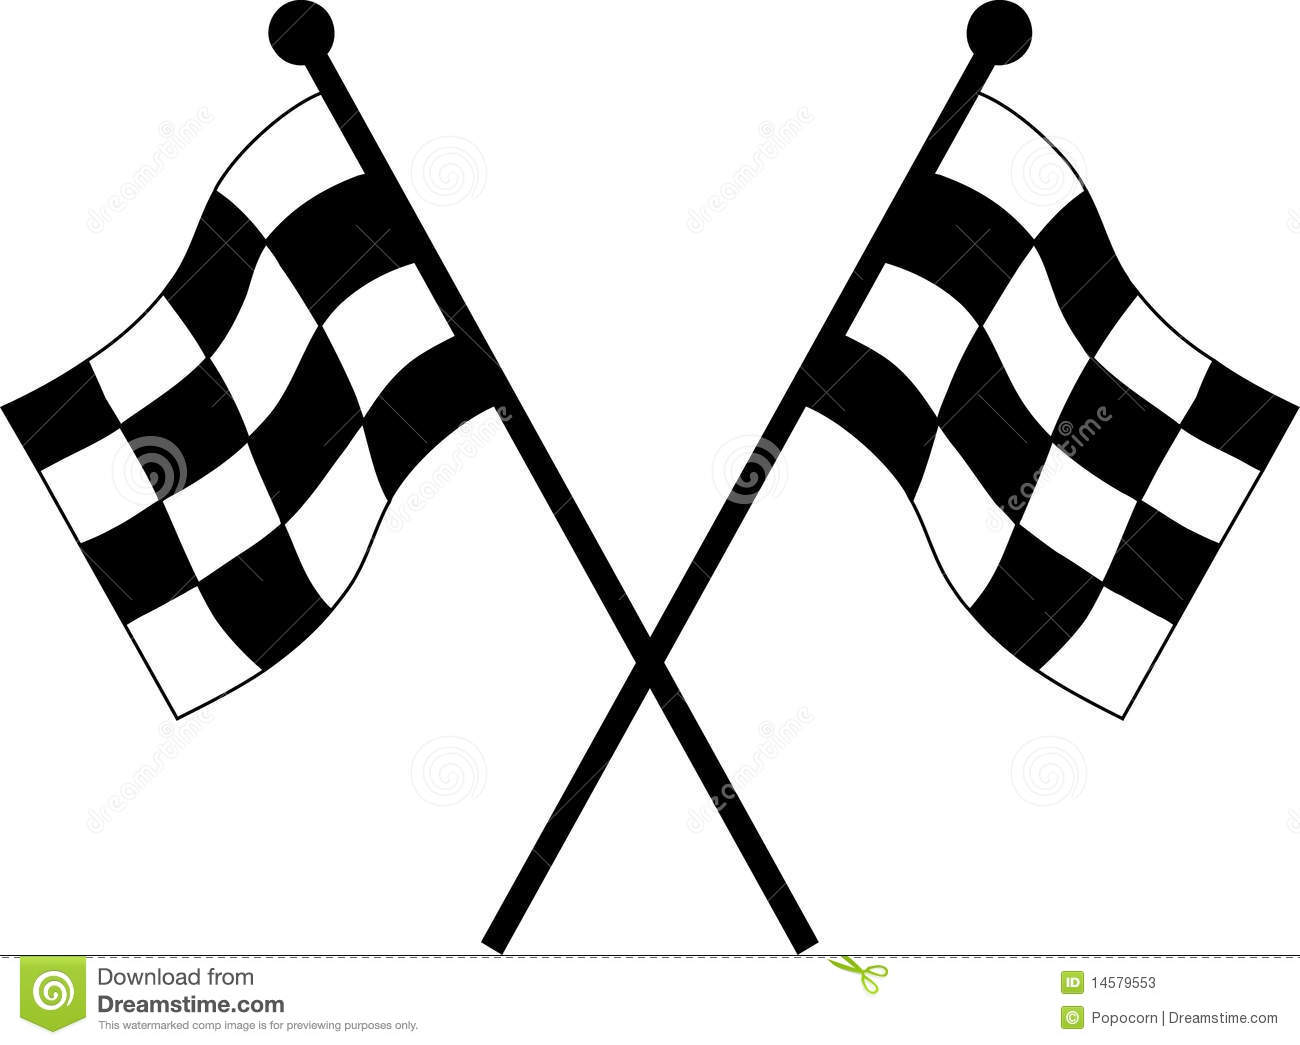 Race Car Clipart Black And White Clipart-Race Car Clipart Black And White Clipart Panda Free Clipart Images-9